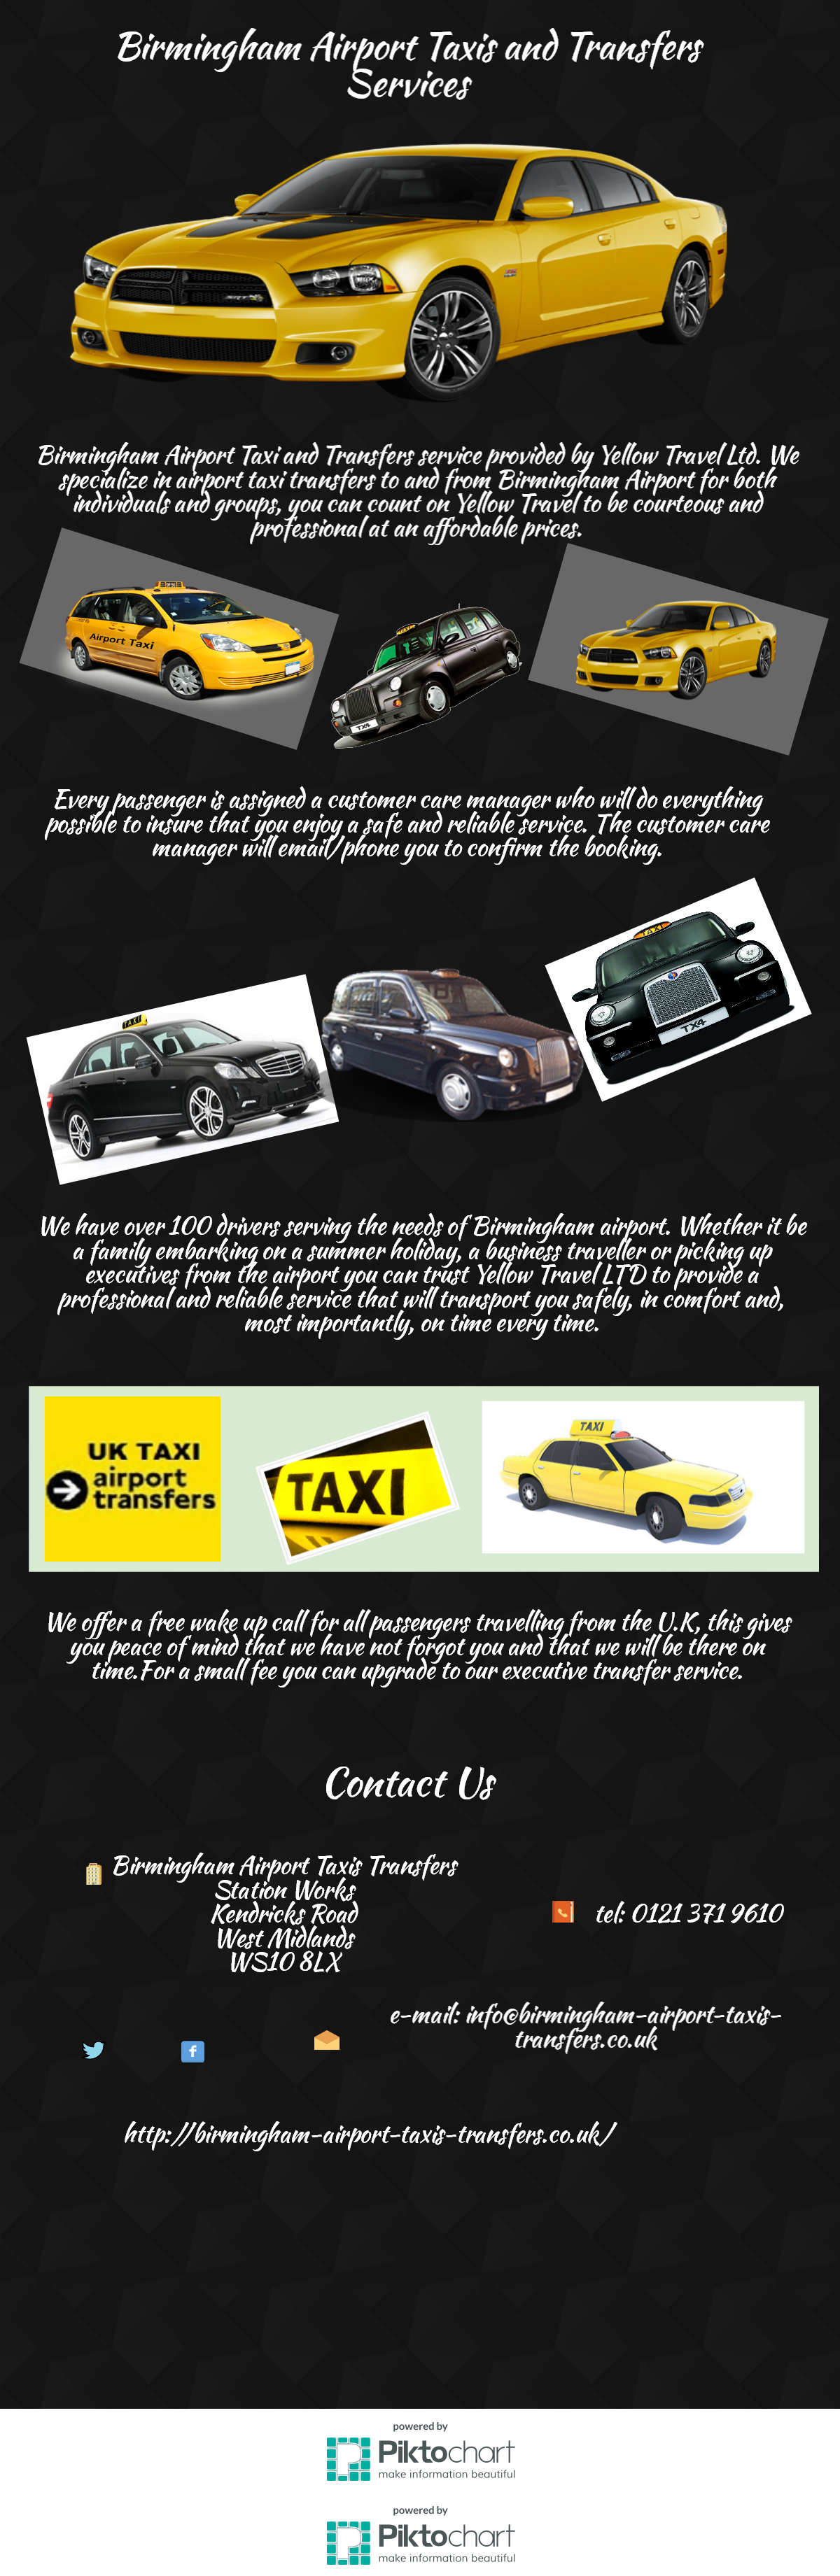 Birmingham airport taxi and transfers service provided by yellow birmingham airport taxi and transfers service provided by yellow travel ltd we specialize in airport kristyandbryce Image collections